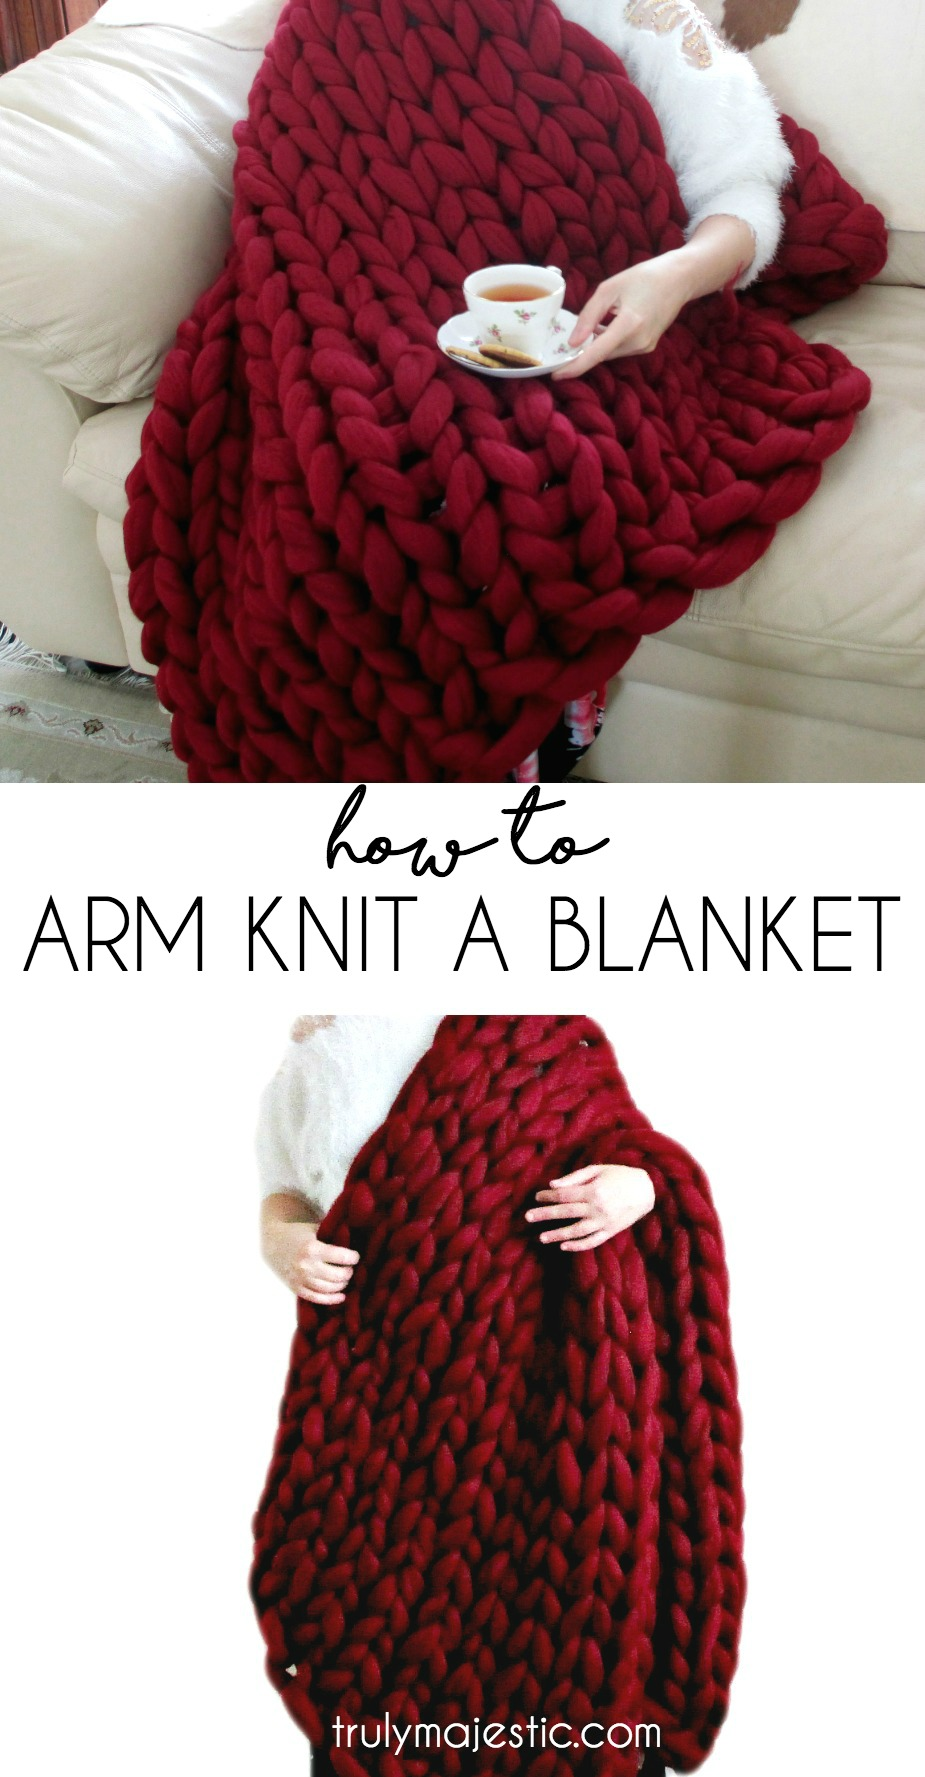 Knitting A Blanket With Arms : How to arm knit a blanket